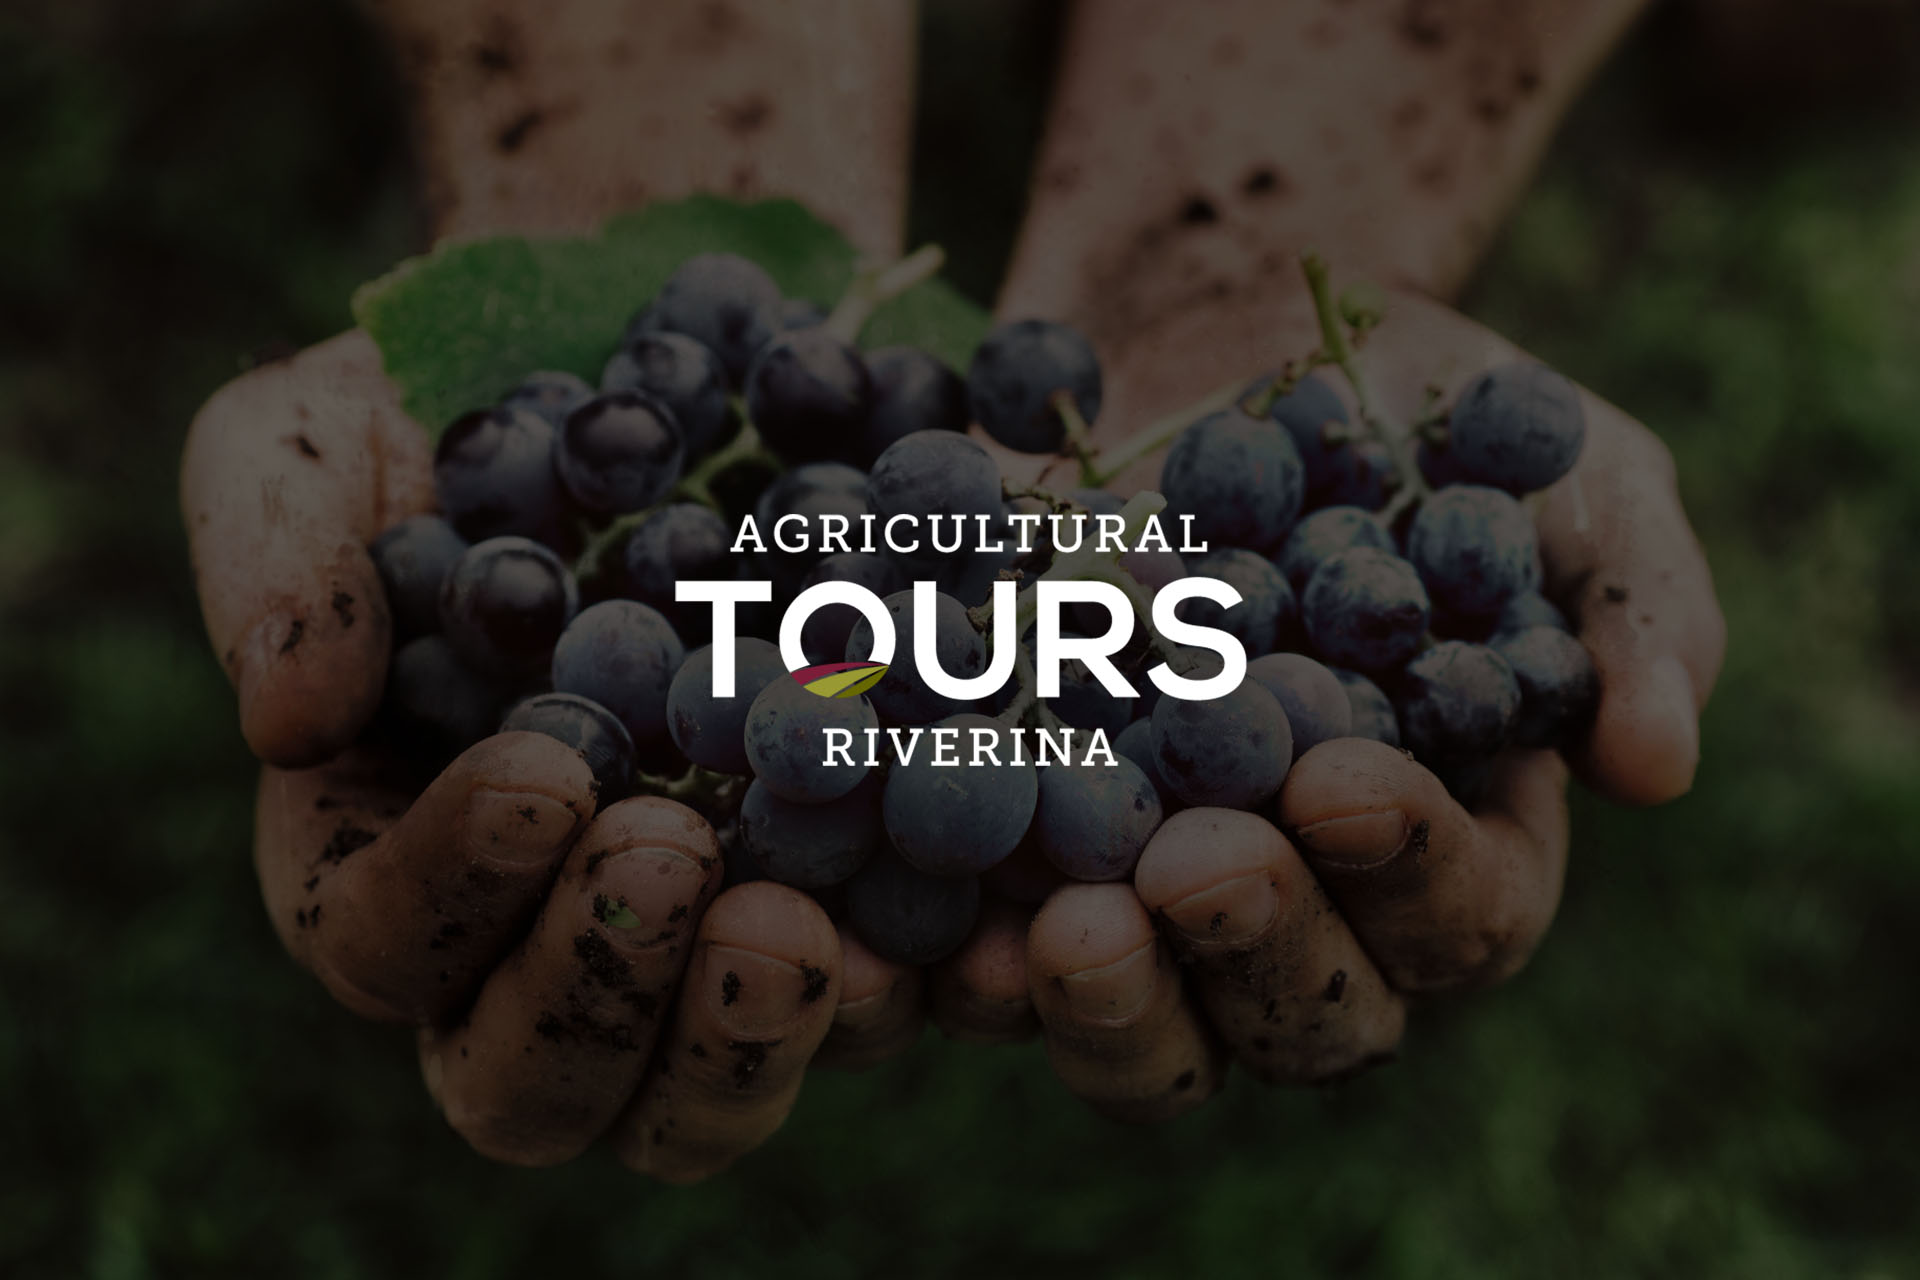 Agricultural Tours Riverina branding by Leysa Flores